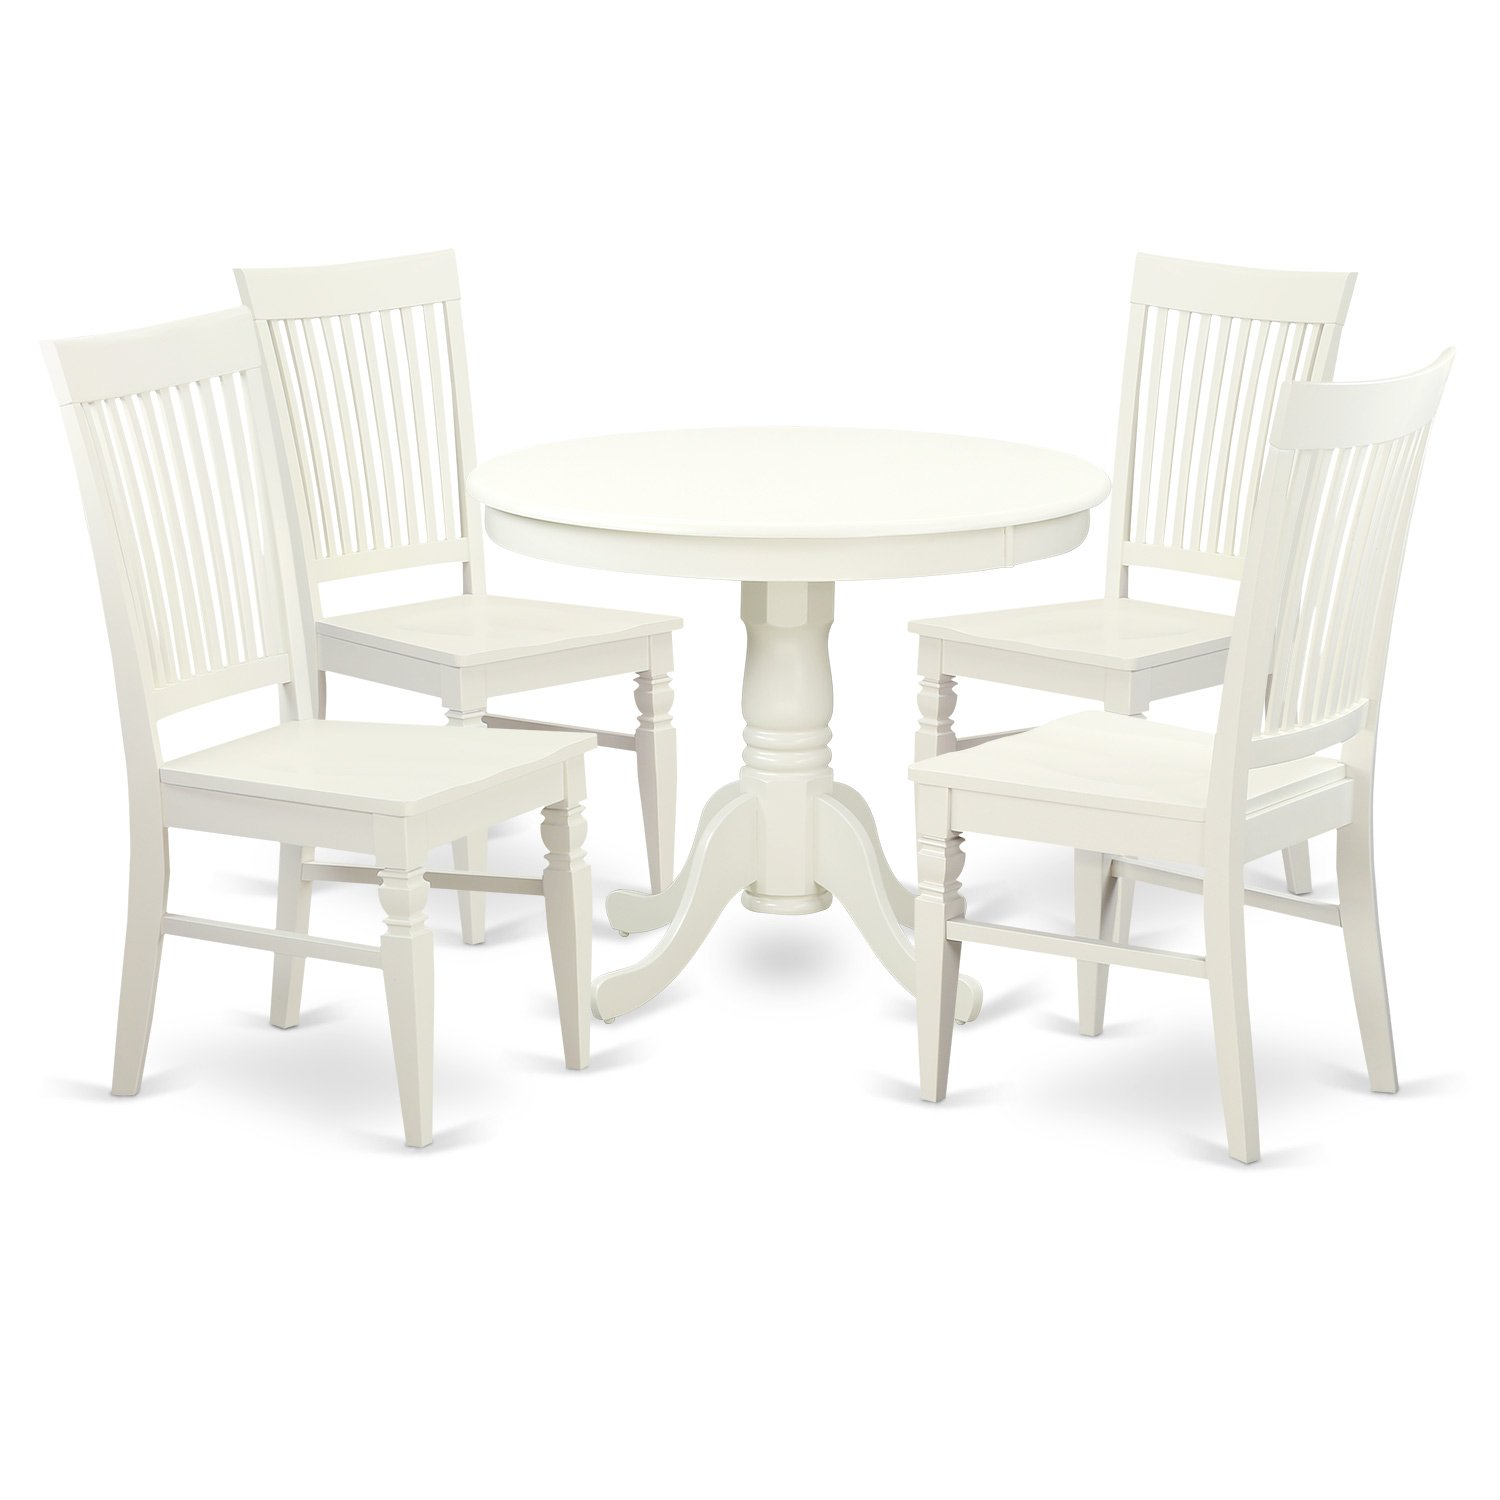 East West Furniture ANWE5-LWH-W 5 PC Set with One Table & 4 Solid Wood Seat Dinette Chairs in a Distinctive Linen White by East West Furniture